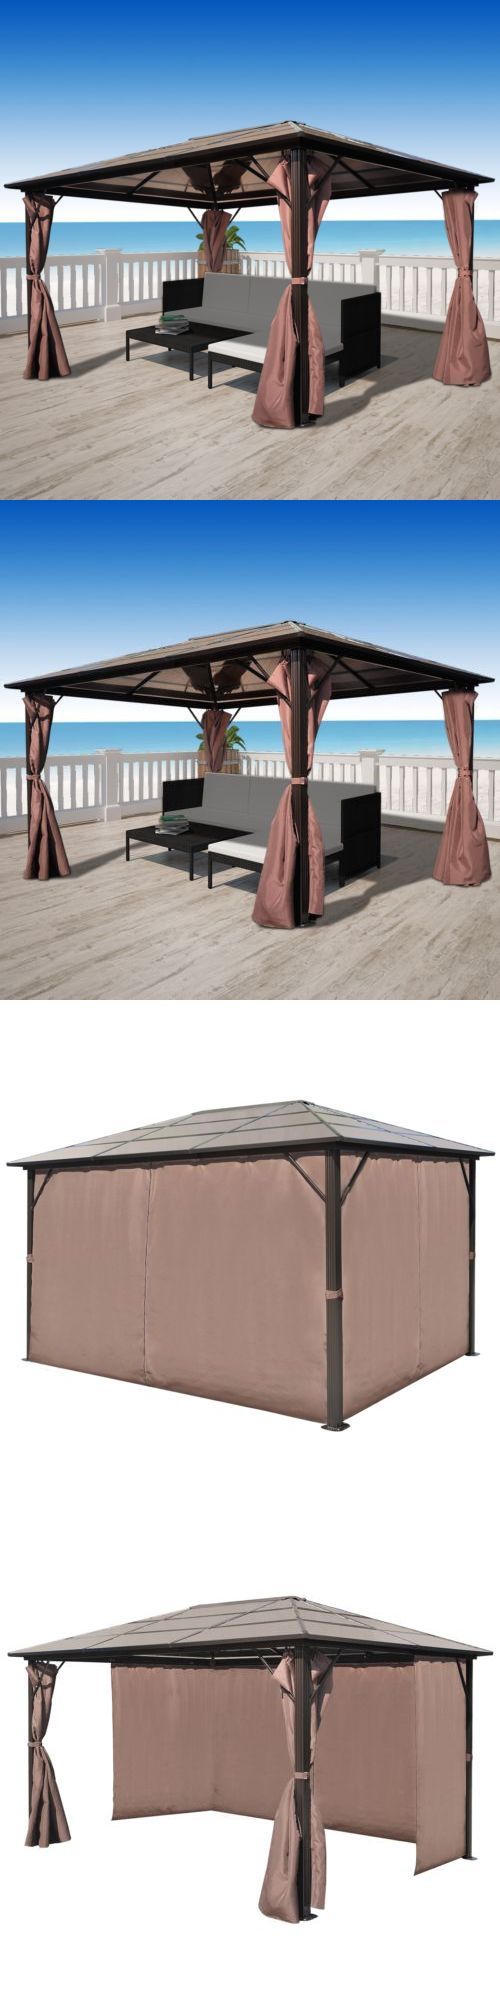 Marquees and Tents 180994: 13 X10 Garden Gazebo Pavilion Canopy Marquee Party Reception Tent Outdoor Brown -> BUY IT NOW ONLY: $644.99 on eBay!